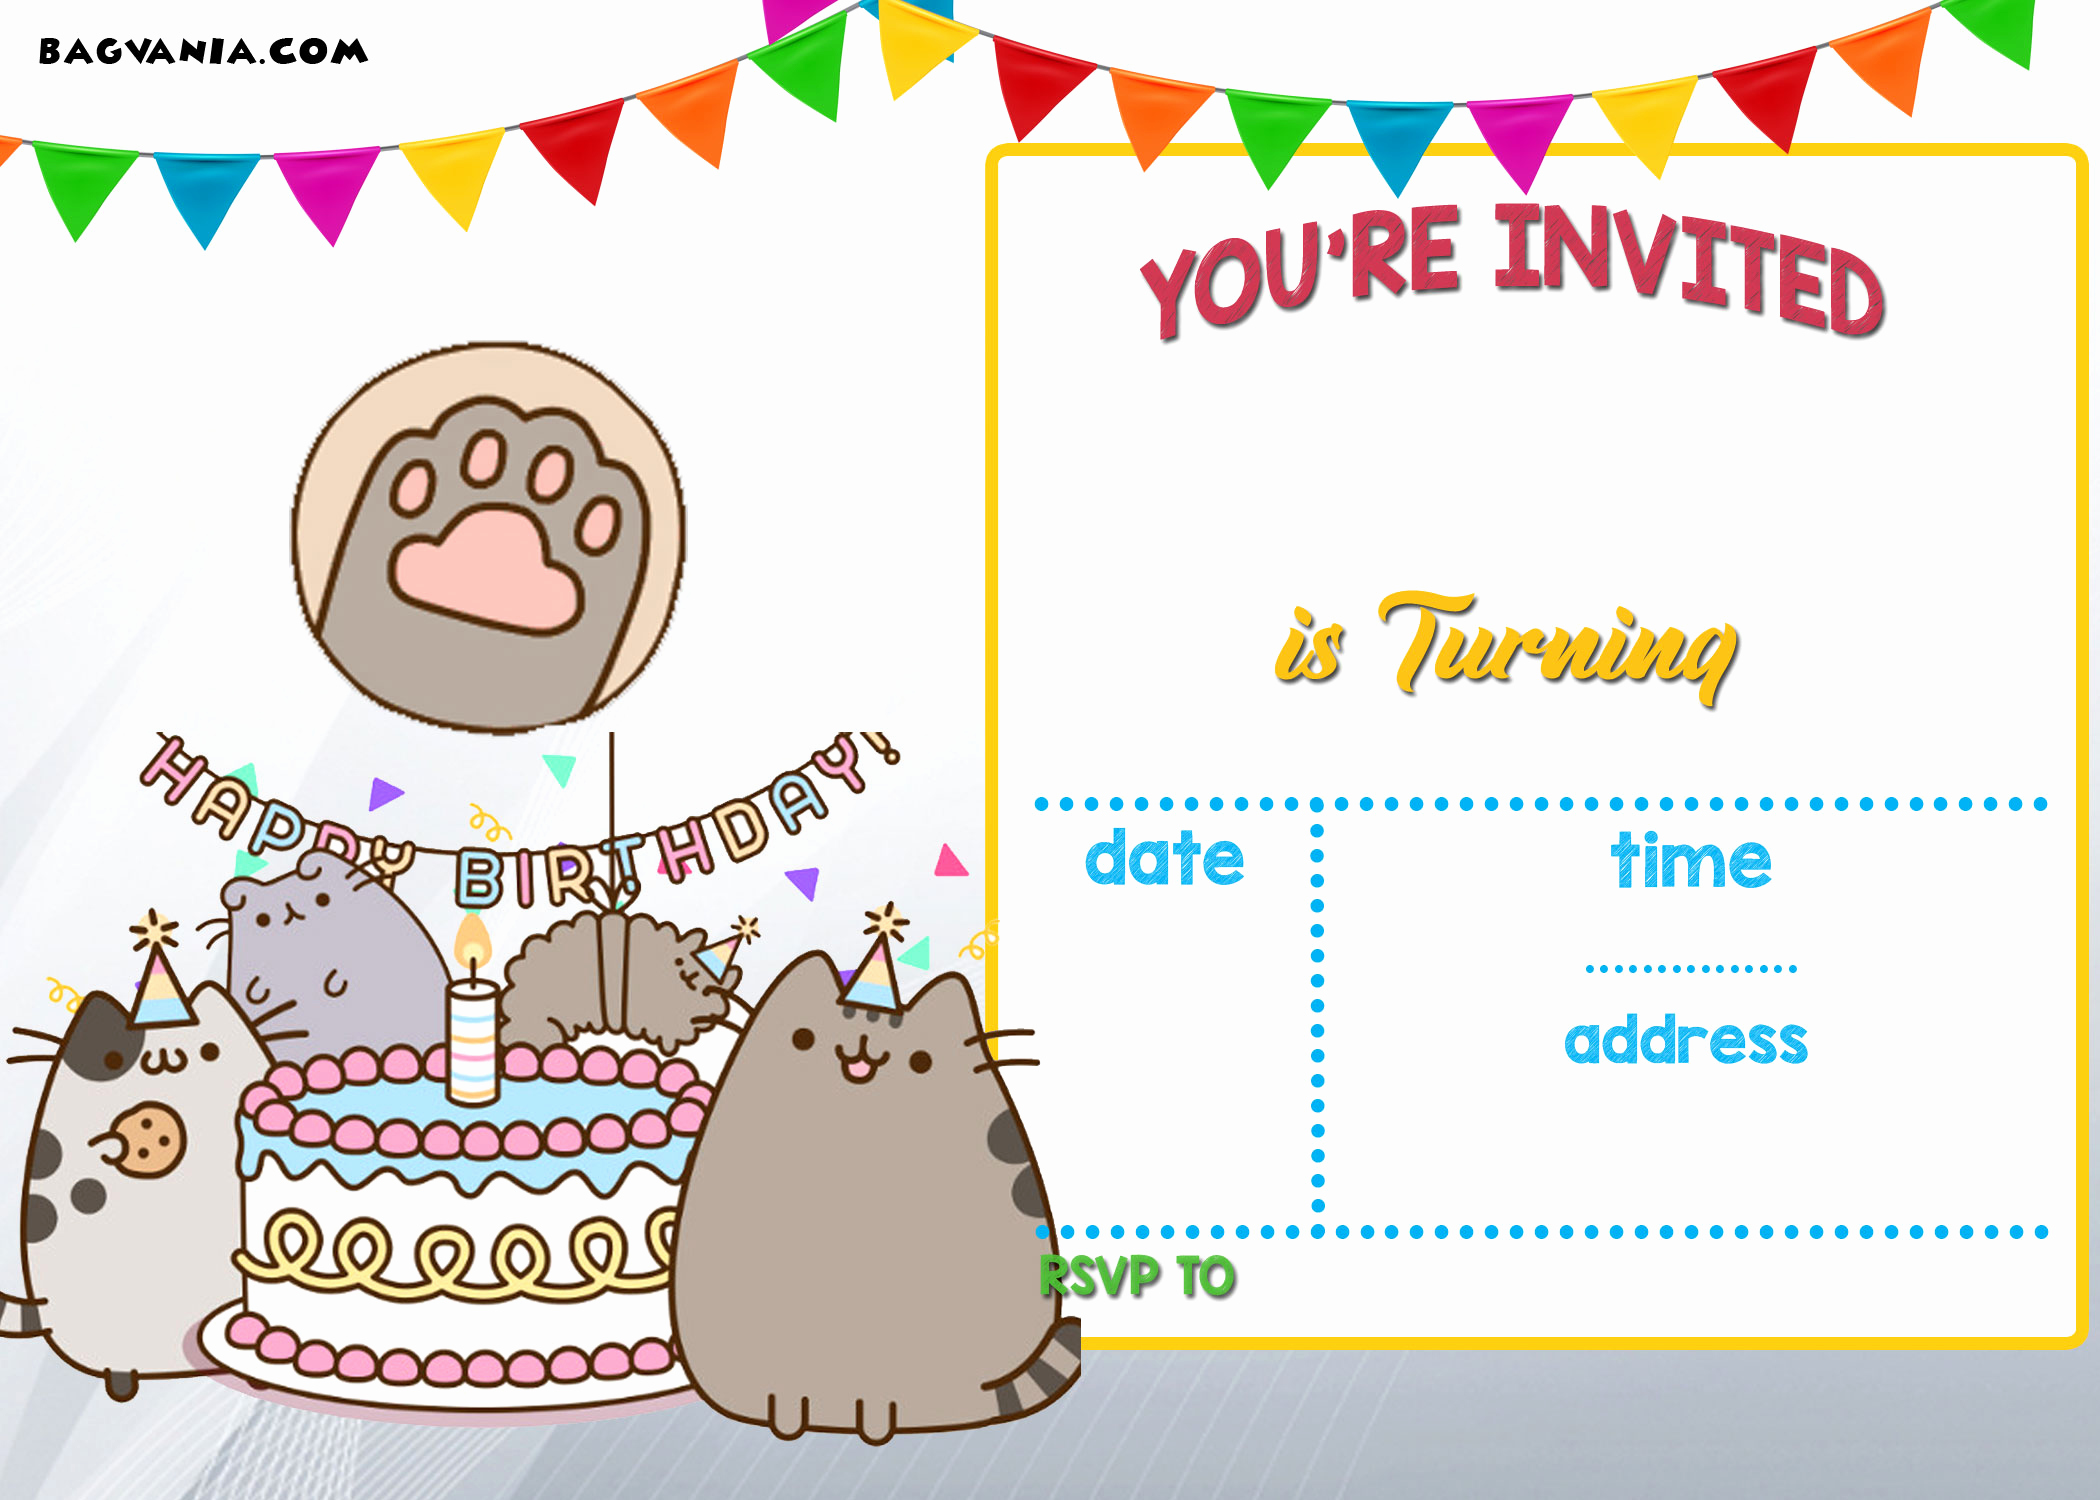 Printable Birthday Invitation Cards Beautiful Free Printable Pusheen Birthday Invitation Template